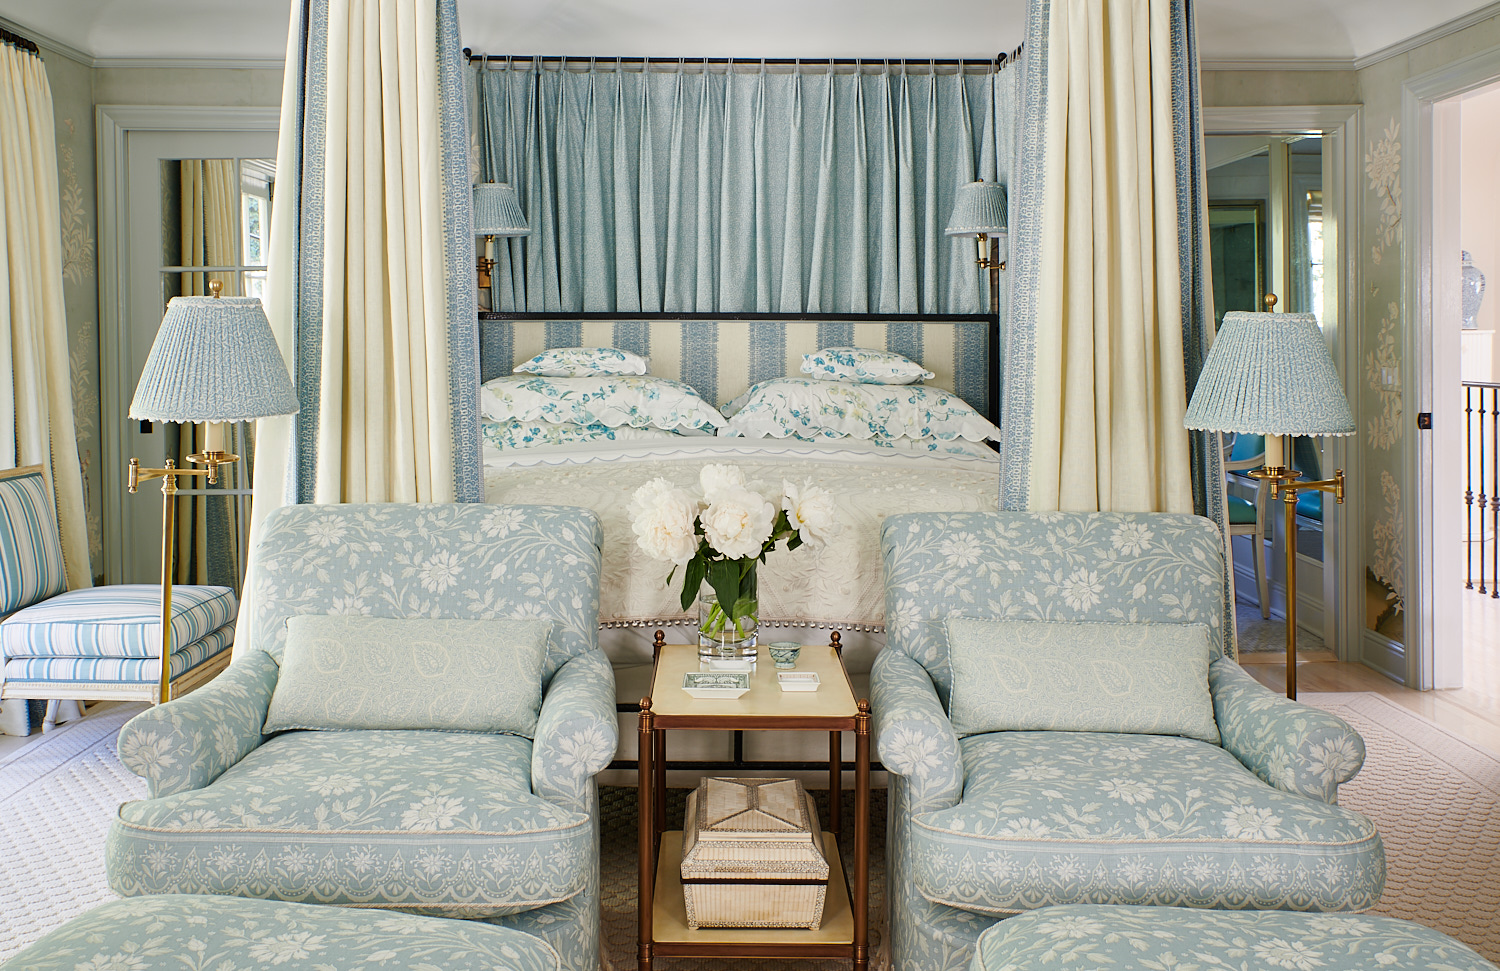 Wide view of bed drapes, stripe upholstered headboard, floral shams, and floral upholstered club chairs with matching ottomans